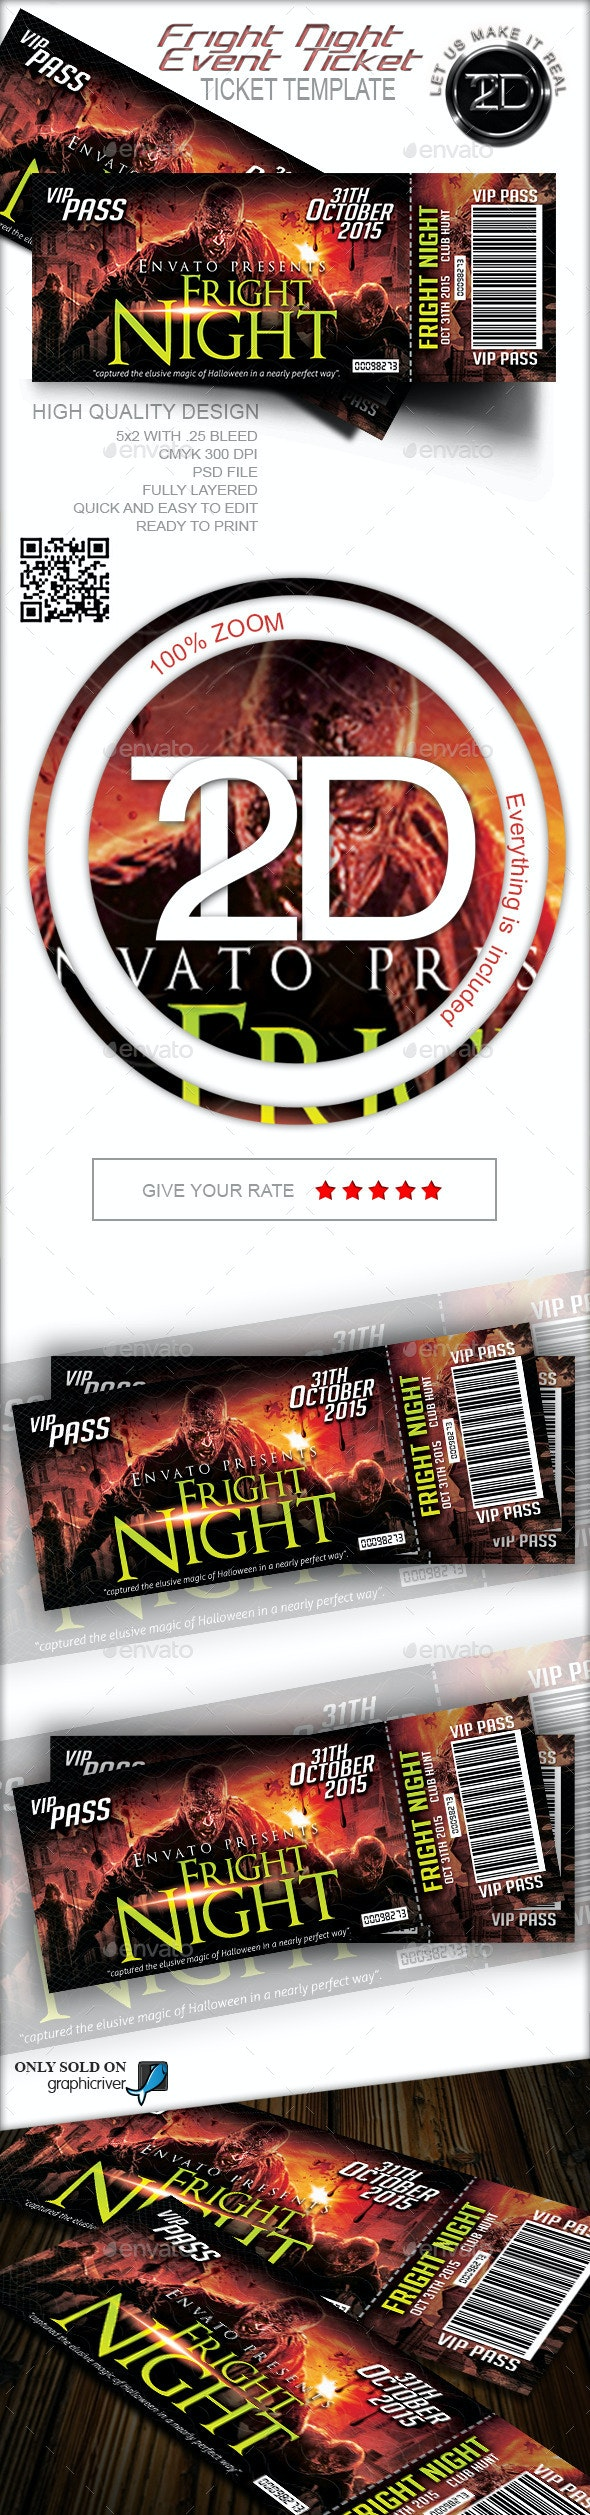 Fright Night Print Ready Event Ticket - Cards & Invites Print Templates